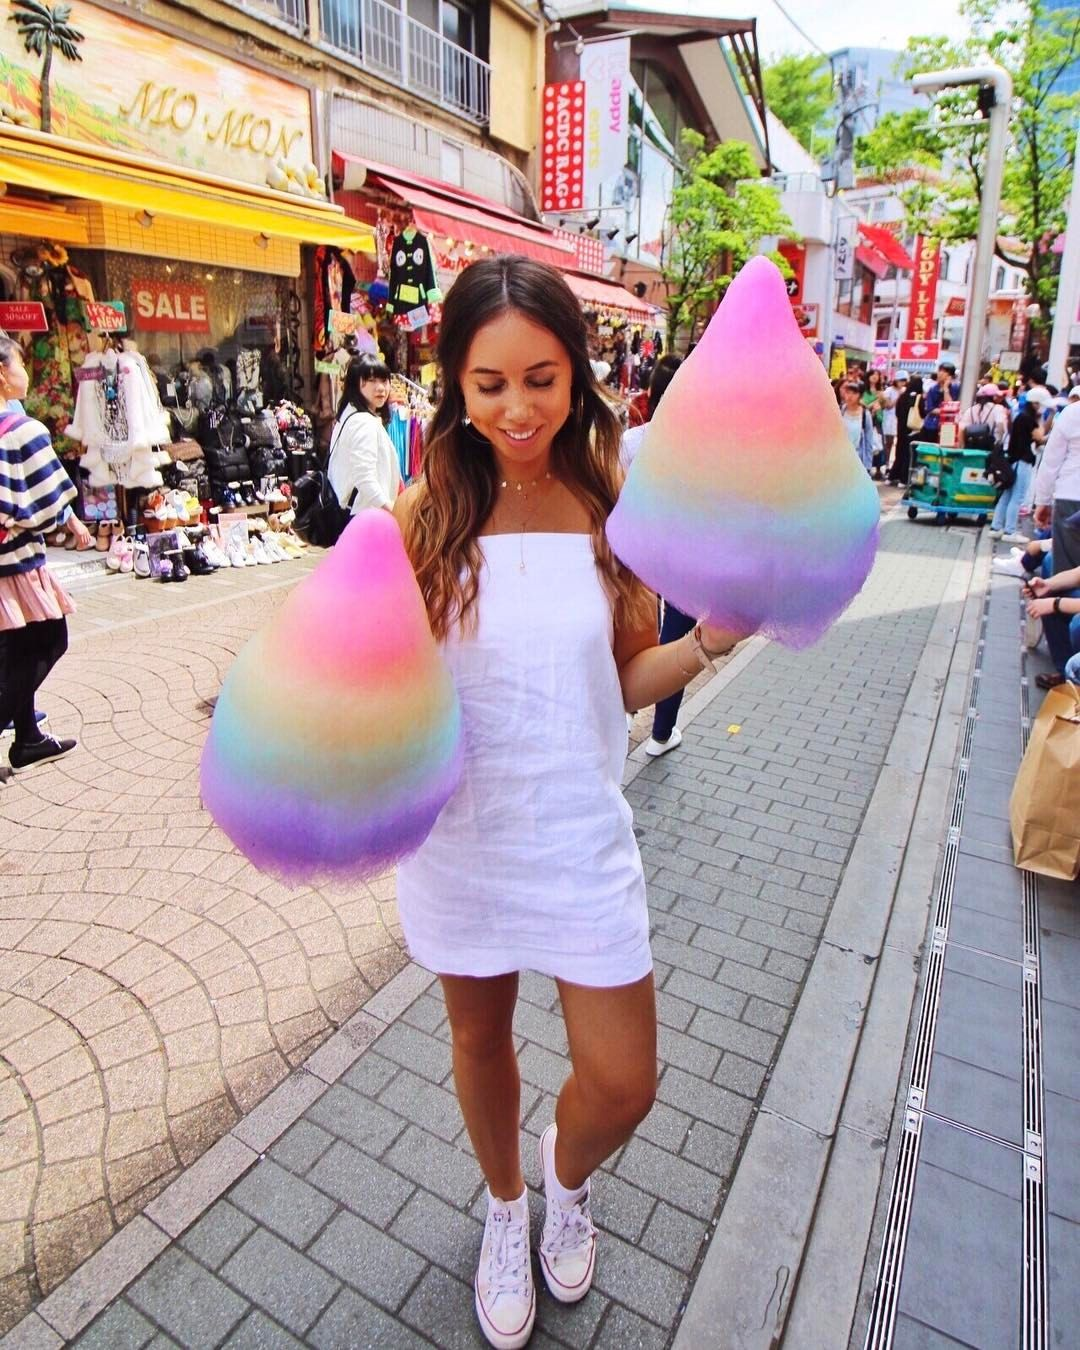 Cotton Factory: The Famous Multi Colored Totti Candy Factory Cotton Candy